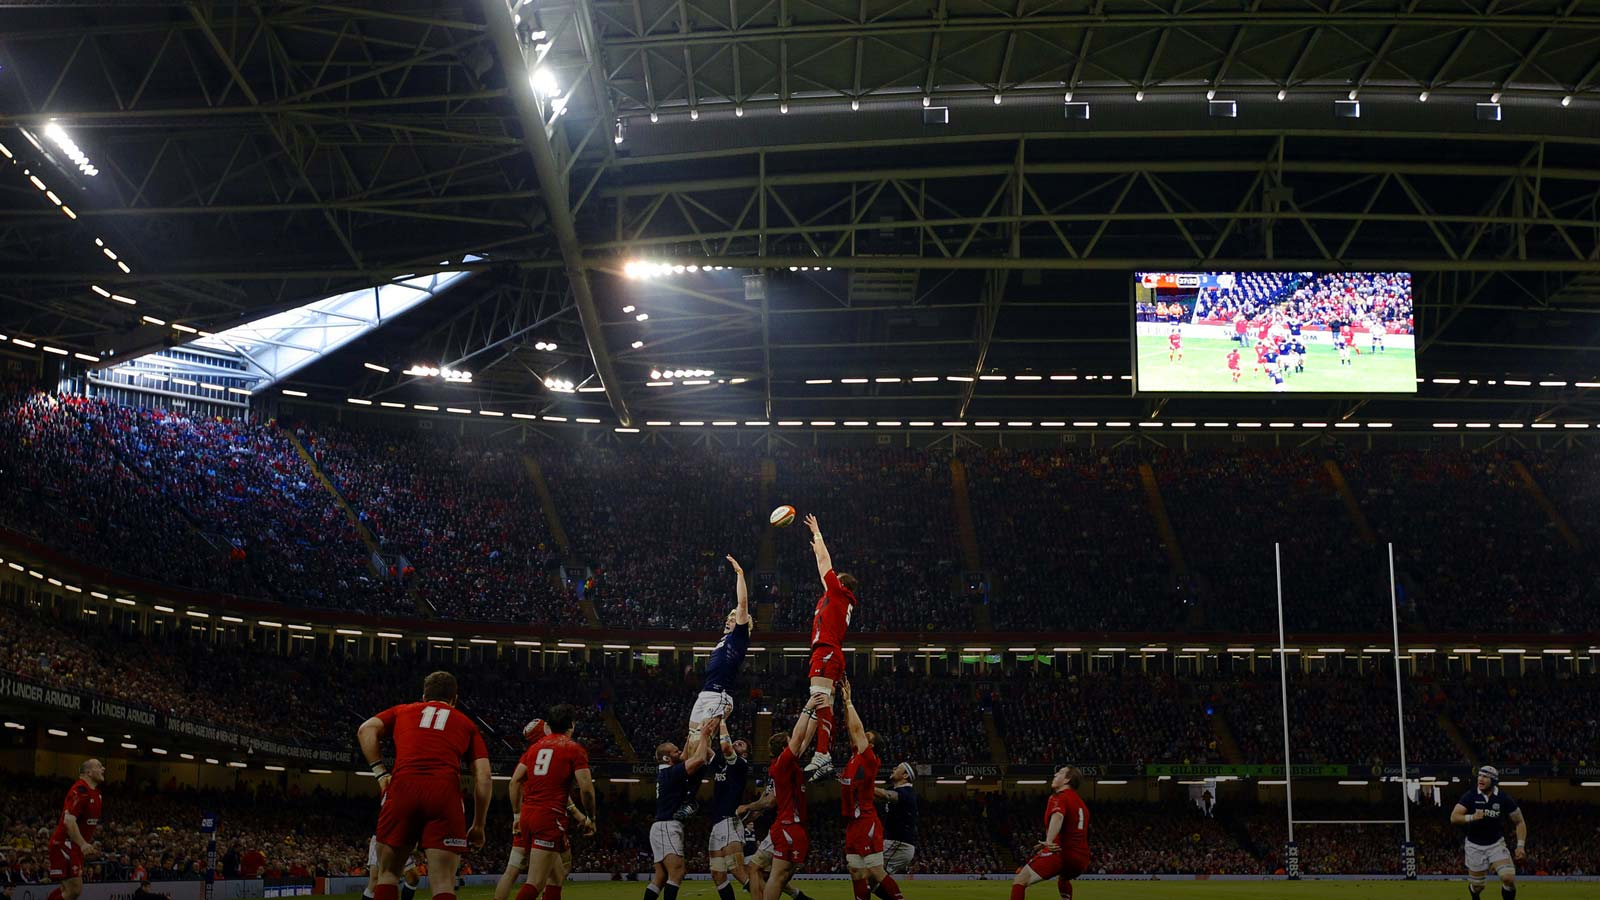 Gloucester Rugby vs Wasps Rugby Live